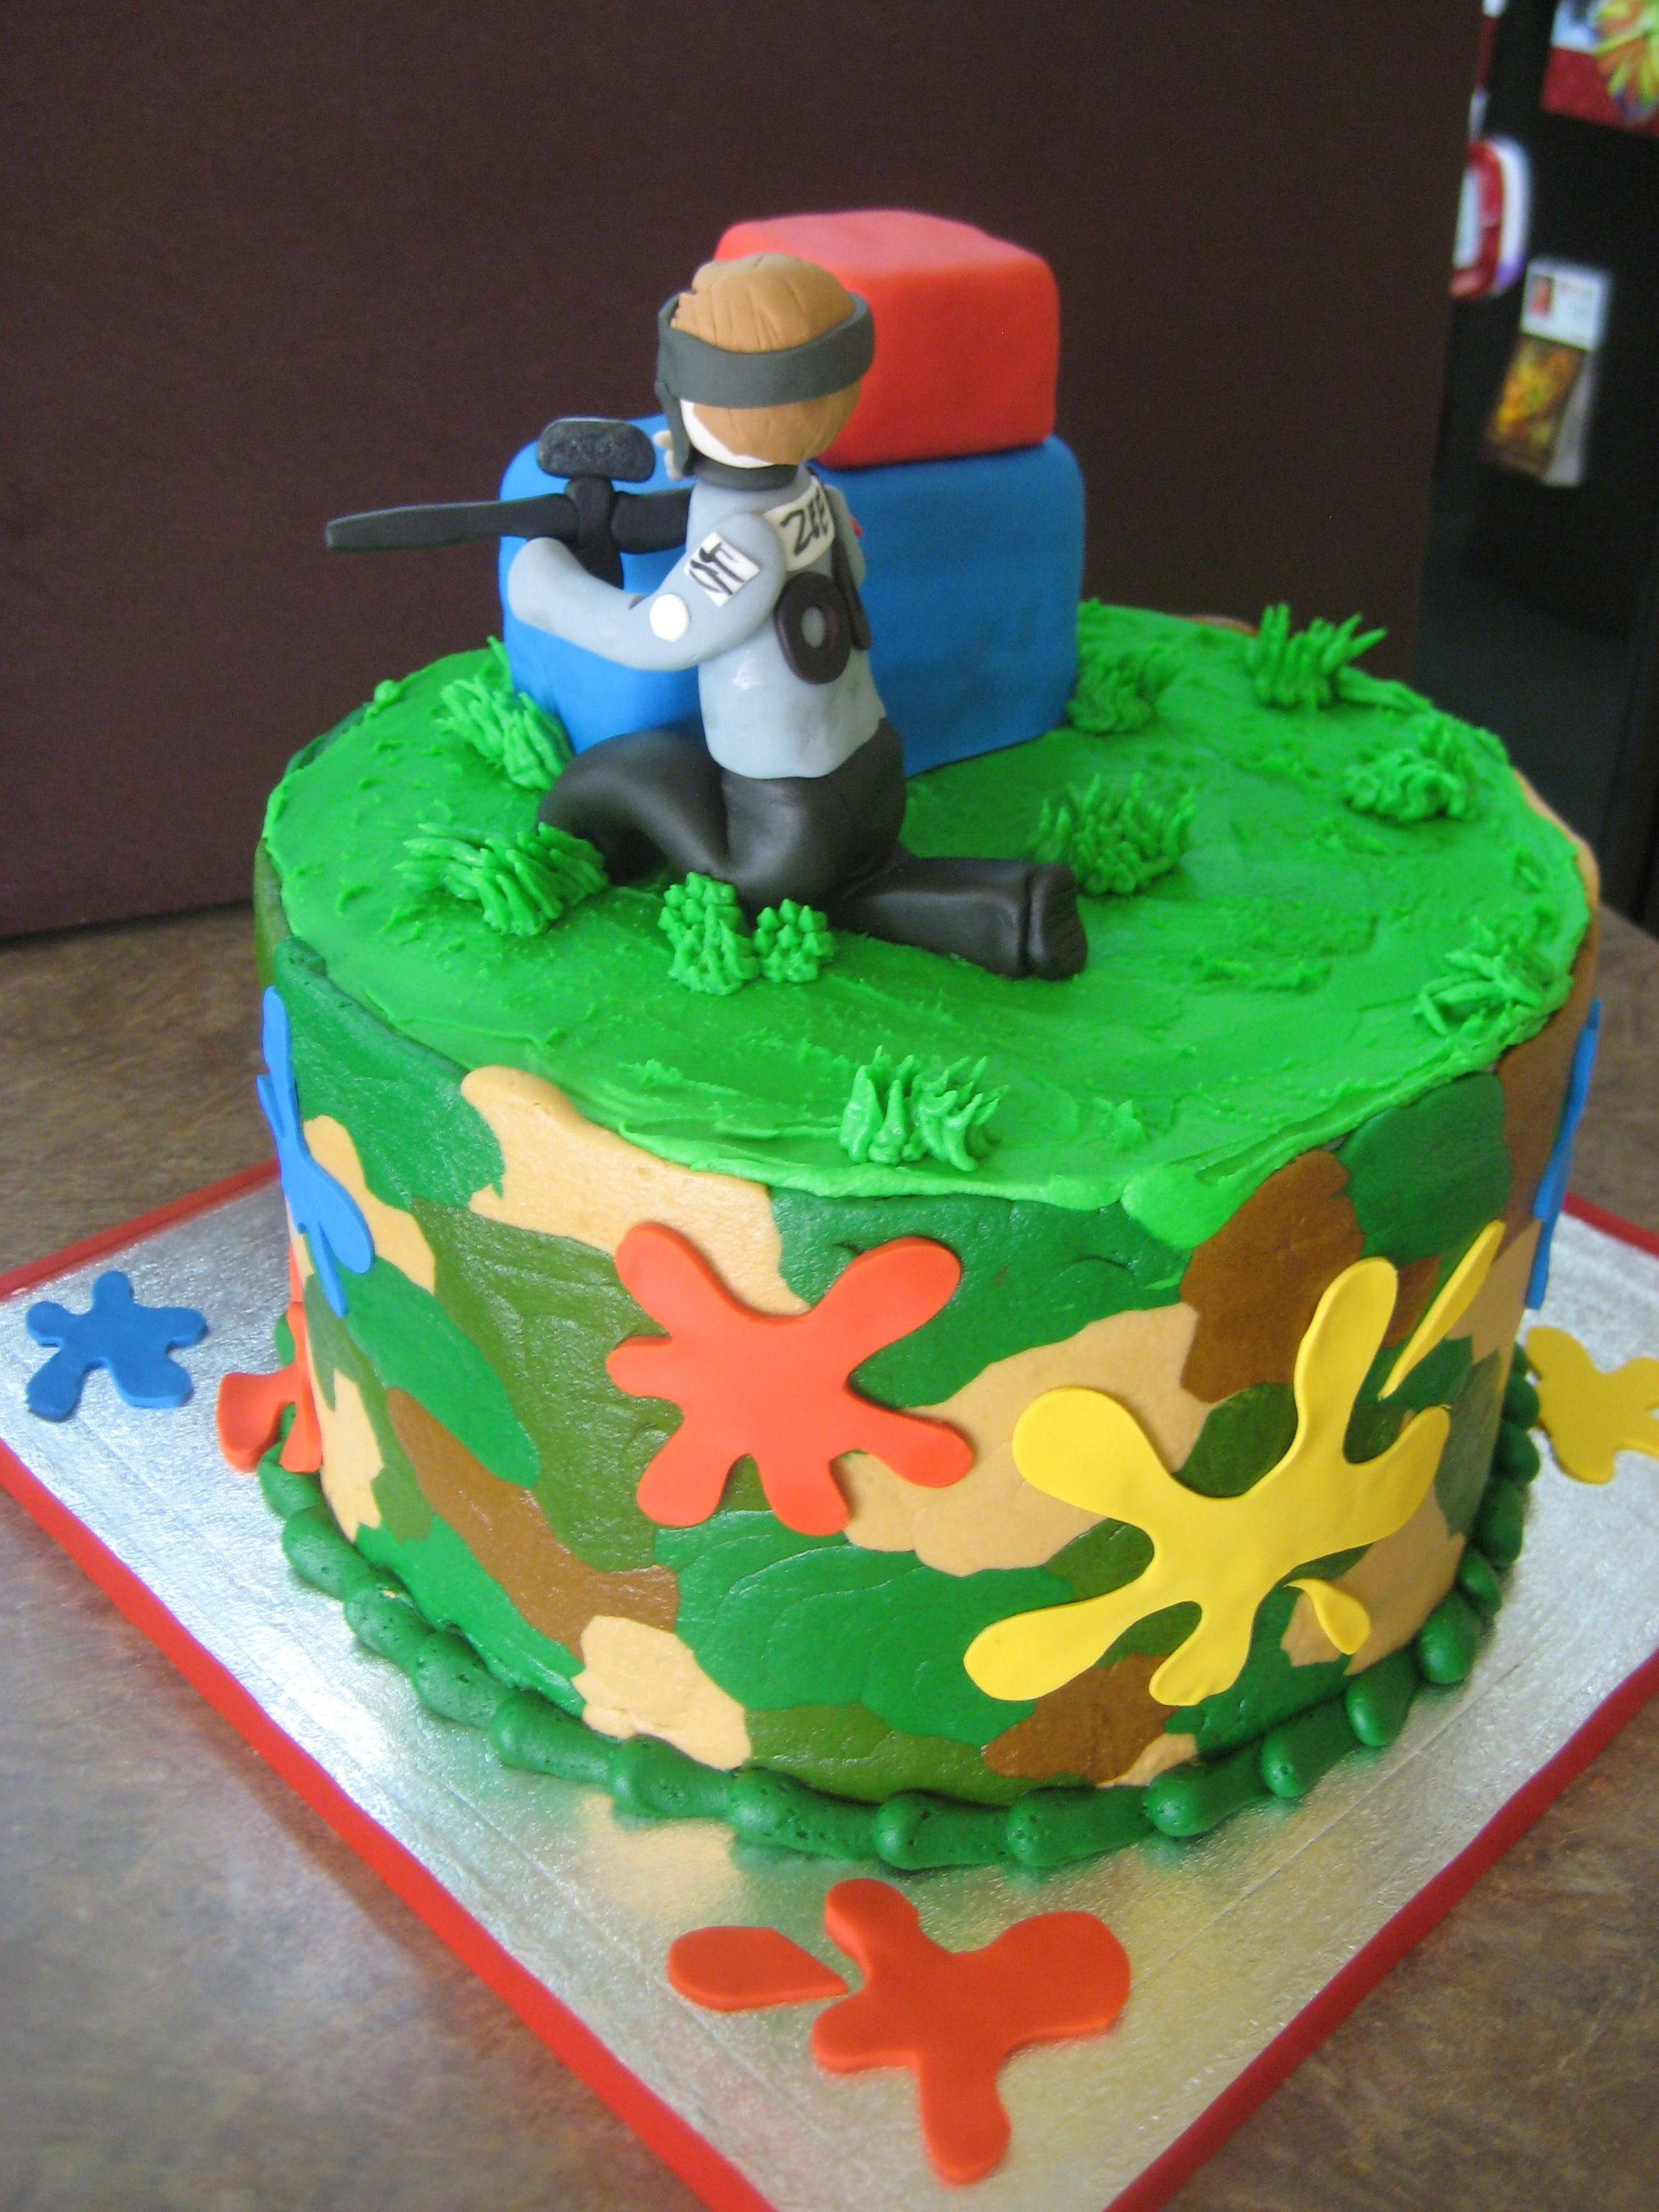 Paintball Cake Birthday Party Idea Kids Fun Family Splatmaster Low